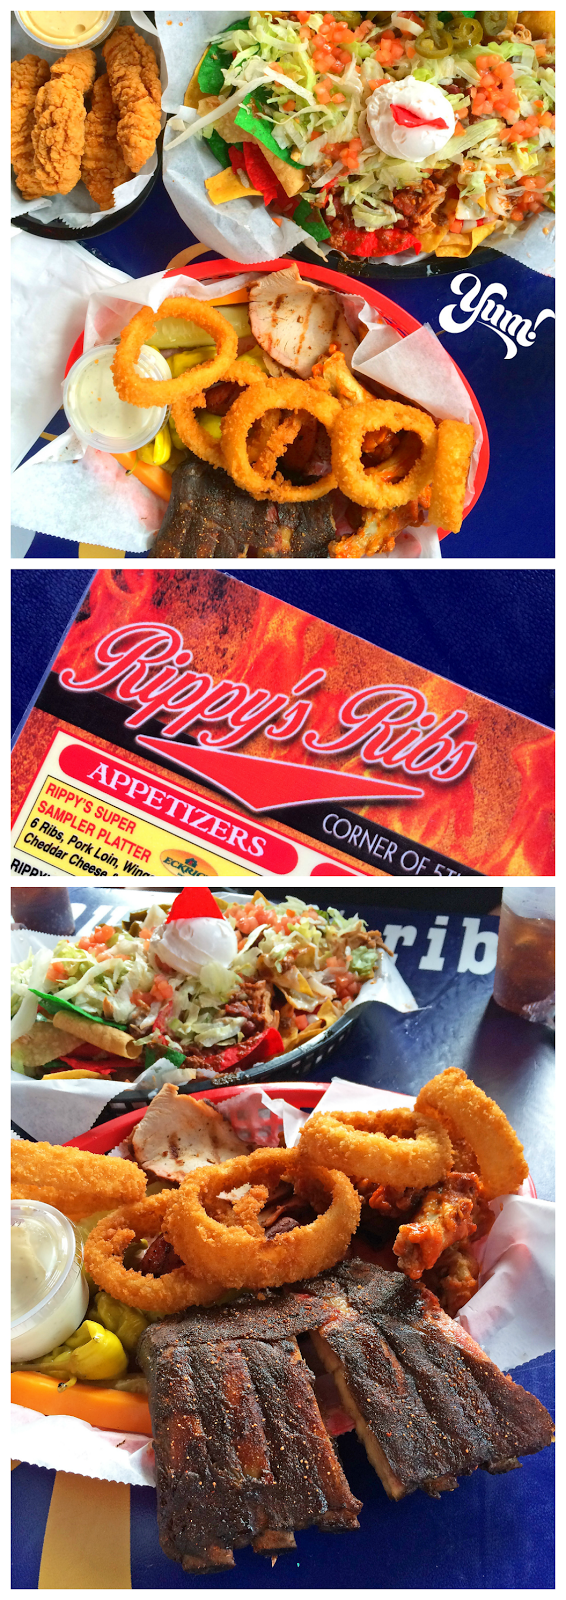 Downtown Nashville - Rippy's Bar & Grill